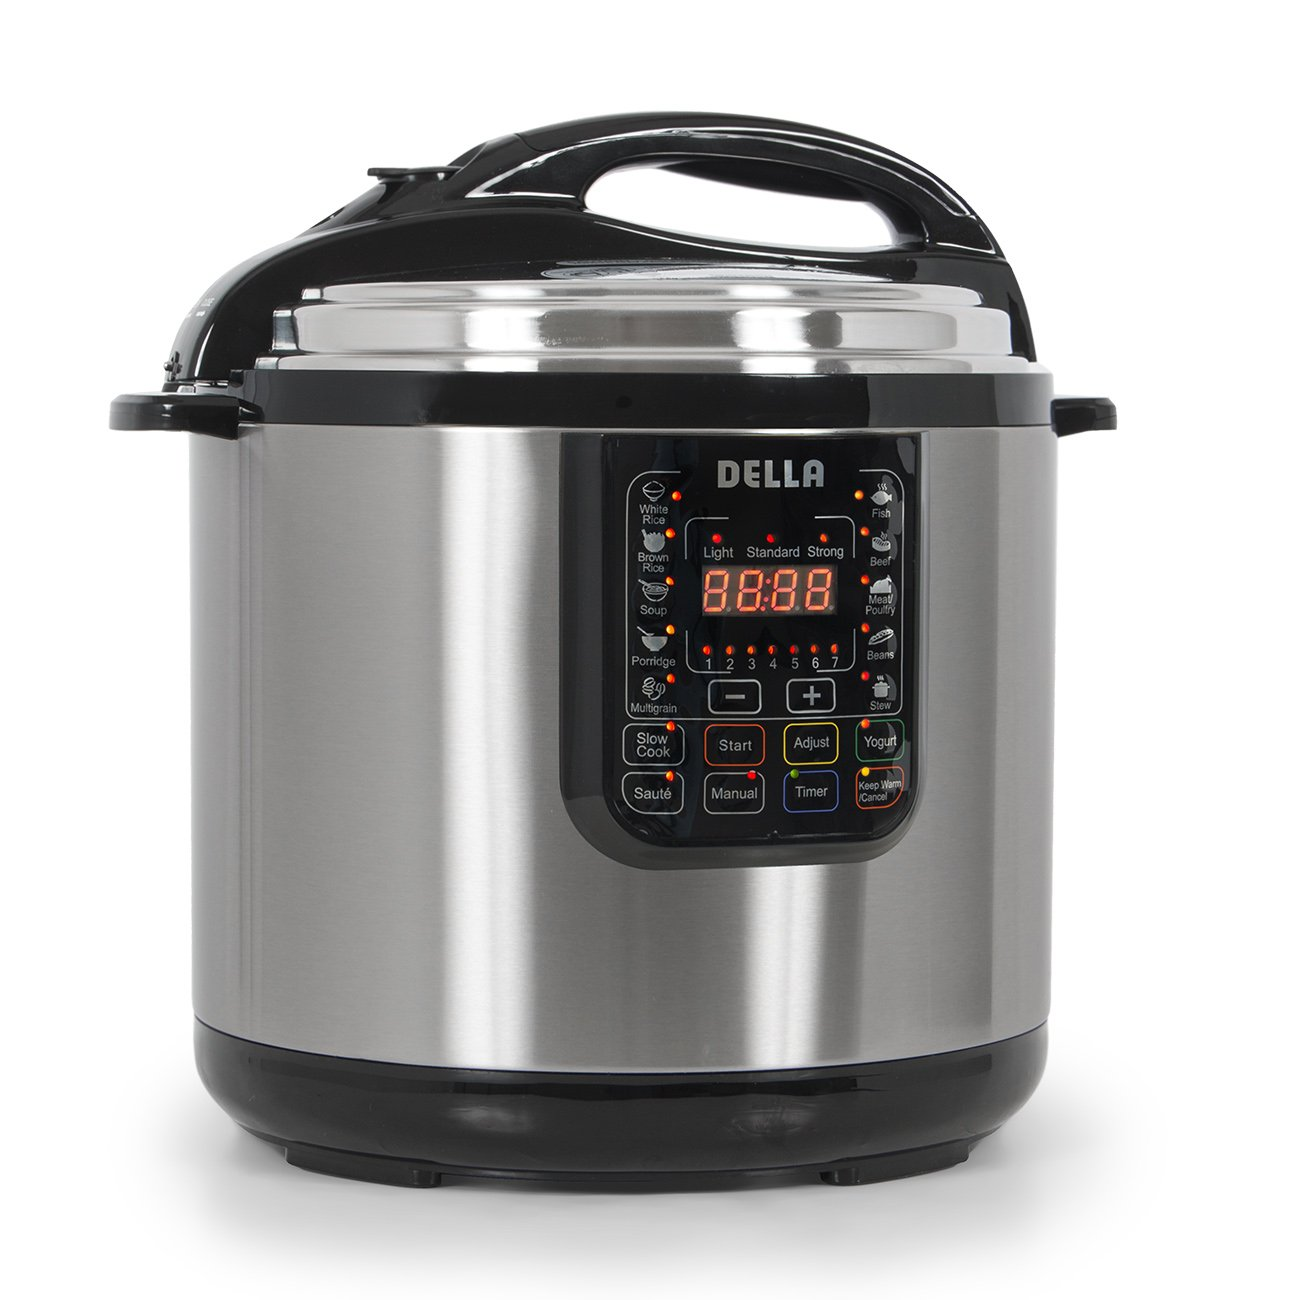 Della 048-GM-48261 Electric XL Pressure Cooker 12 Quart Stainless Steel